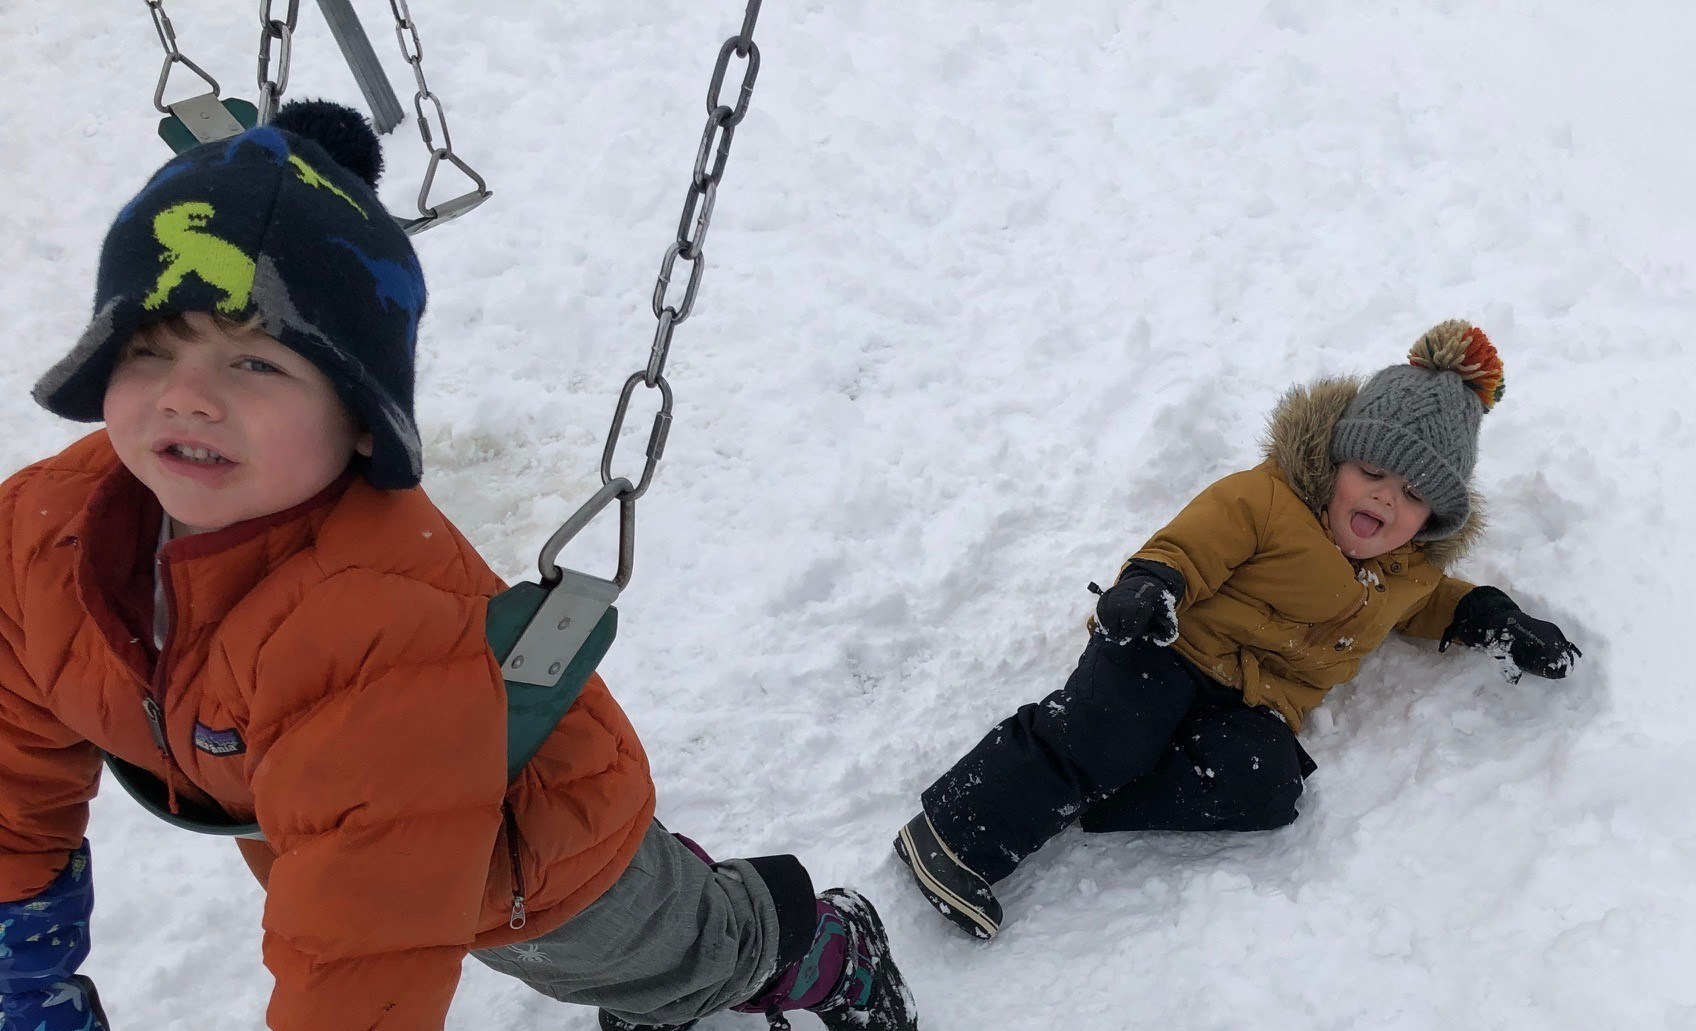 Boys_playing_roughly_on_swing_during_wintertime